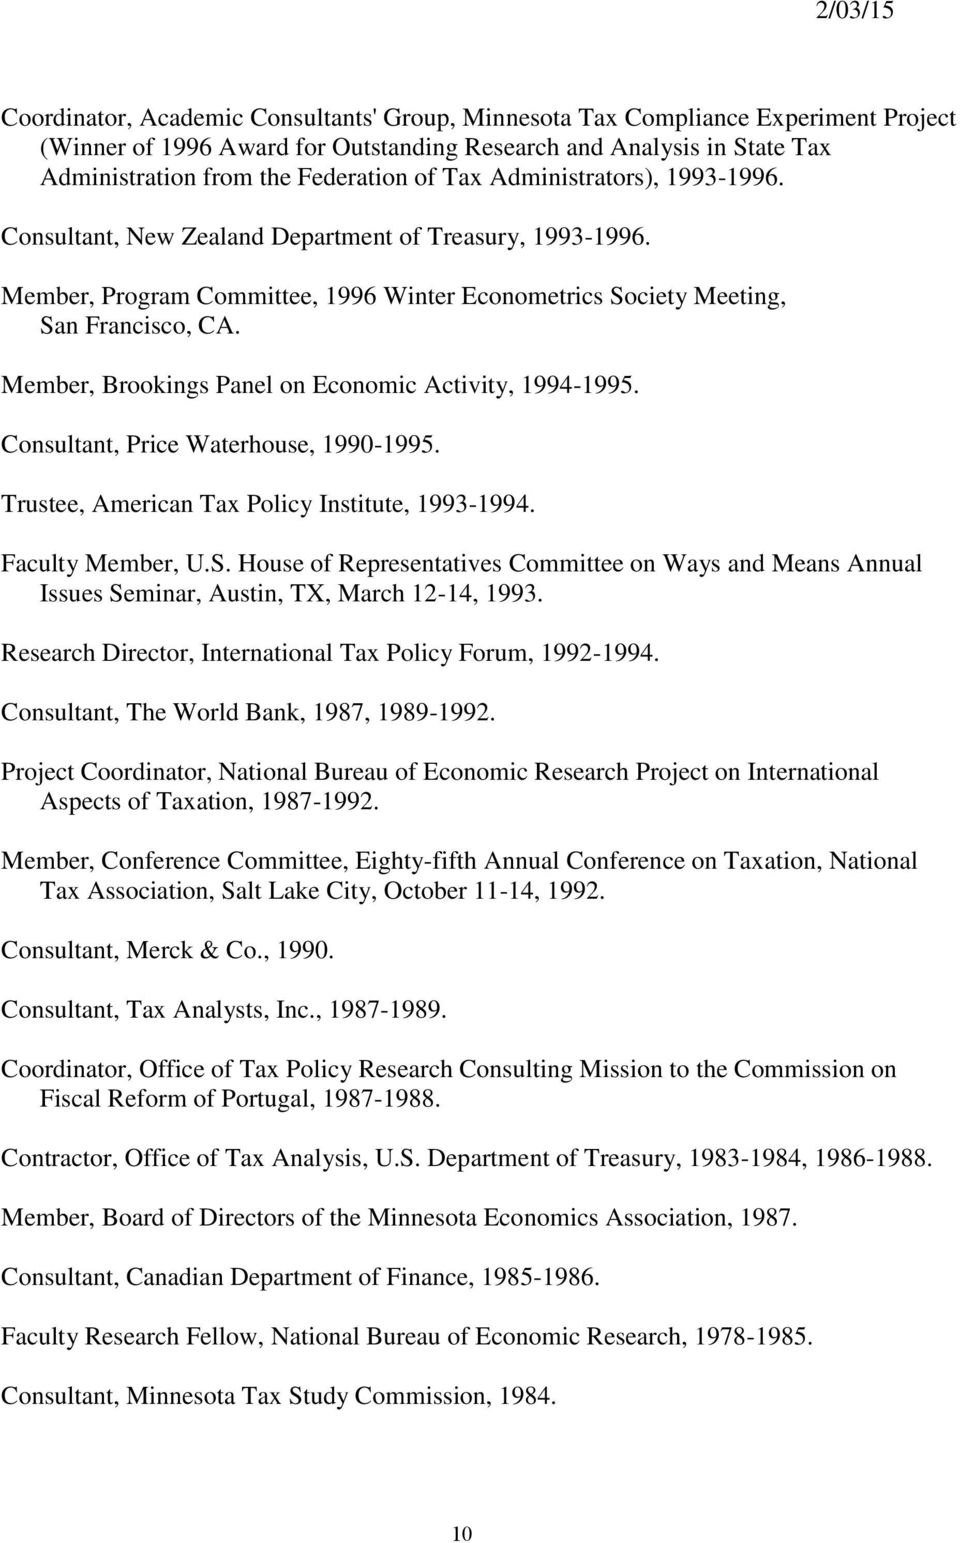 Member, Brookings Panel on Economic Activity, 1994-1995. Consultant, Price Waterhouse, 1990-1995. Trustee, American Tax Policy Institute, 1993-1994. Faculty Member, U.S.